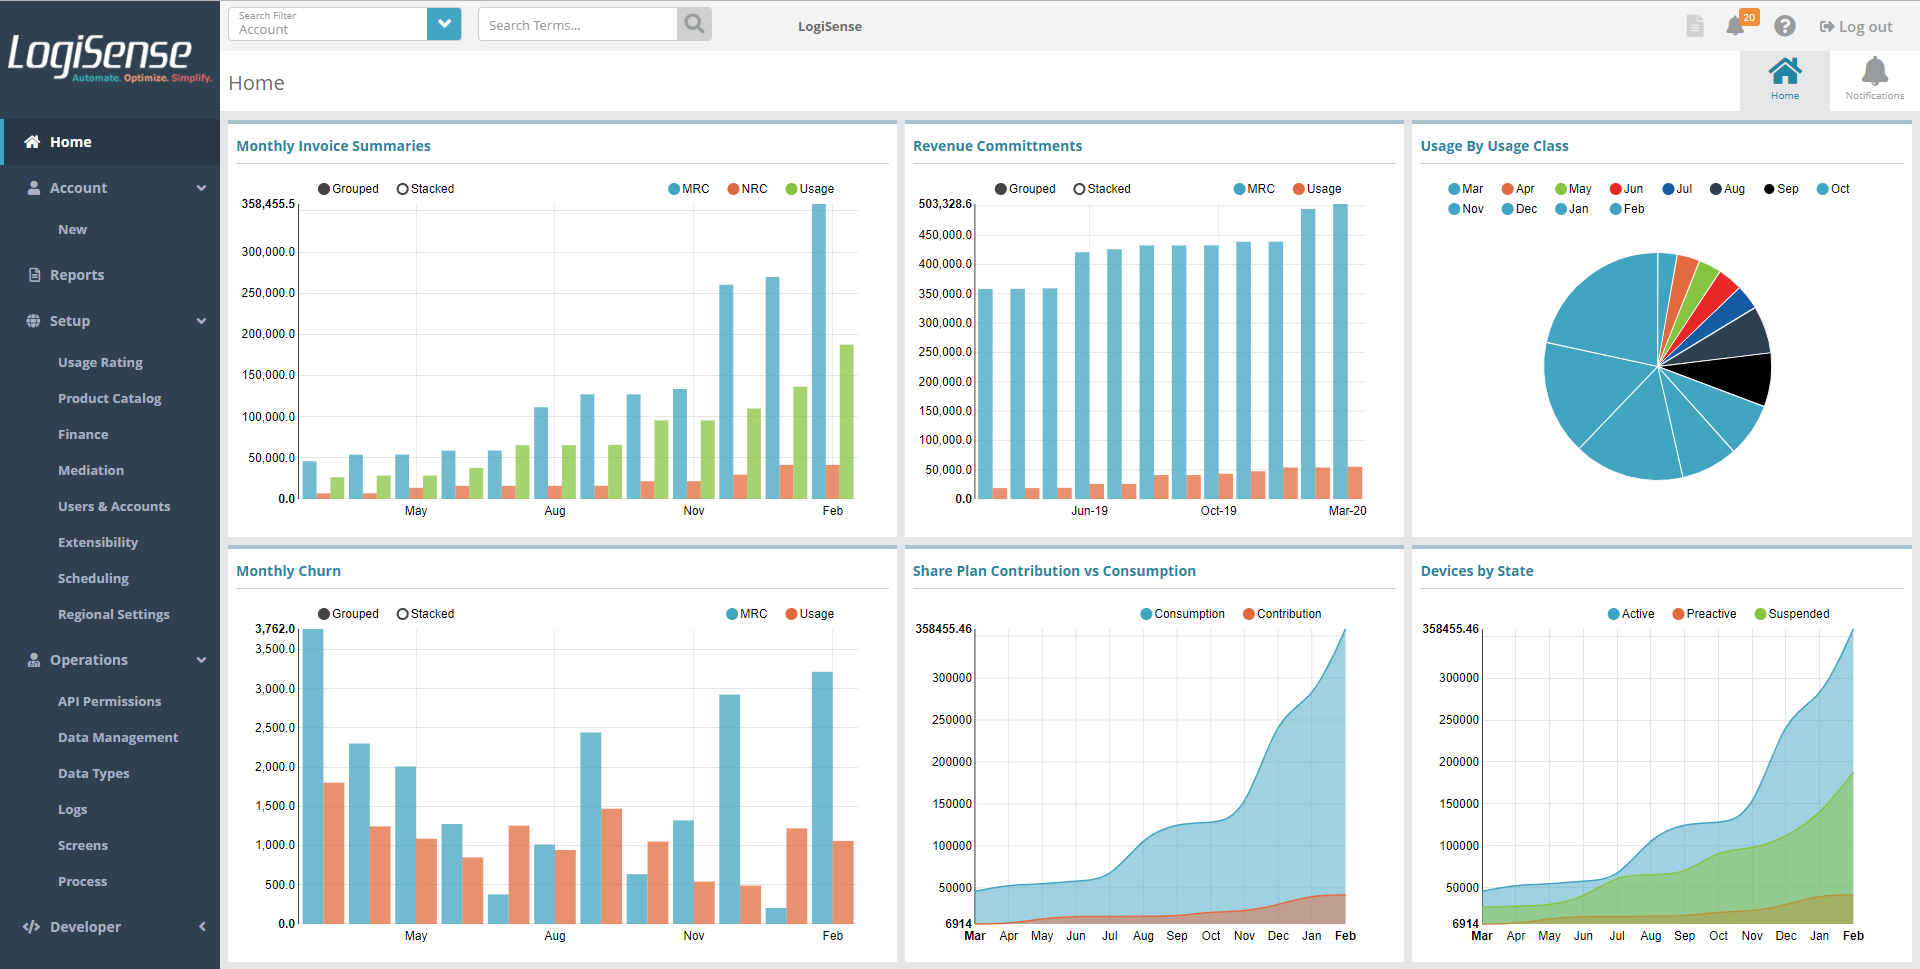 Dashboards for Visibility into Billing Data